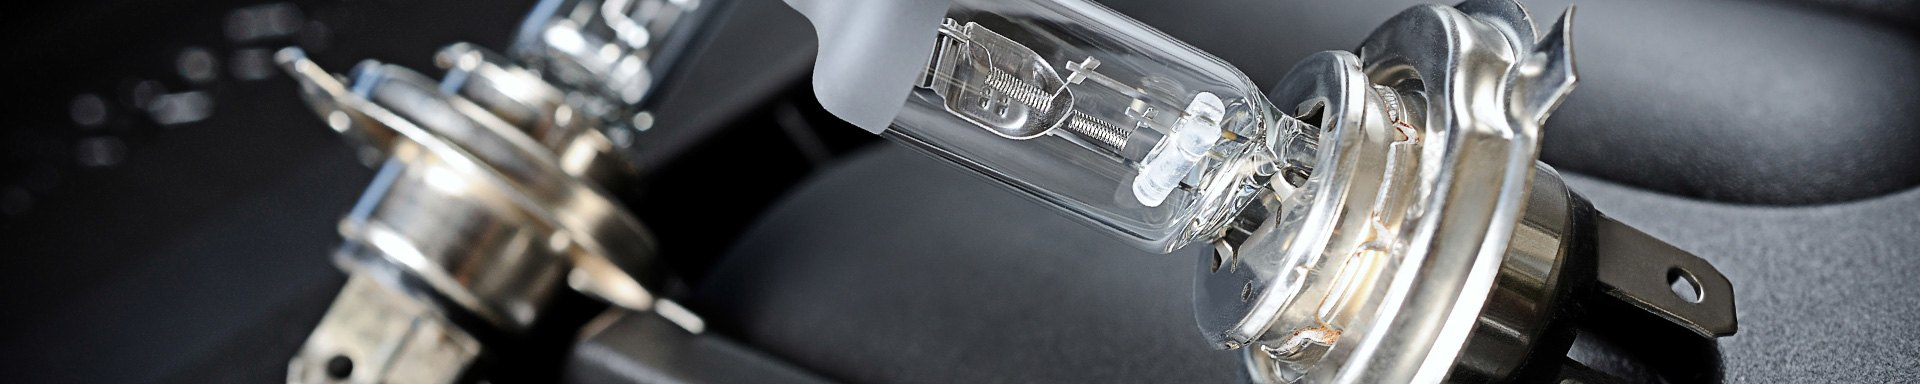 Freightliner Light Bulbs | Halogen, Xenon, LED - CARiD com